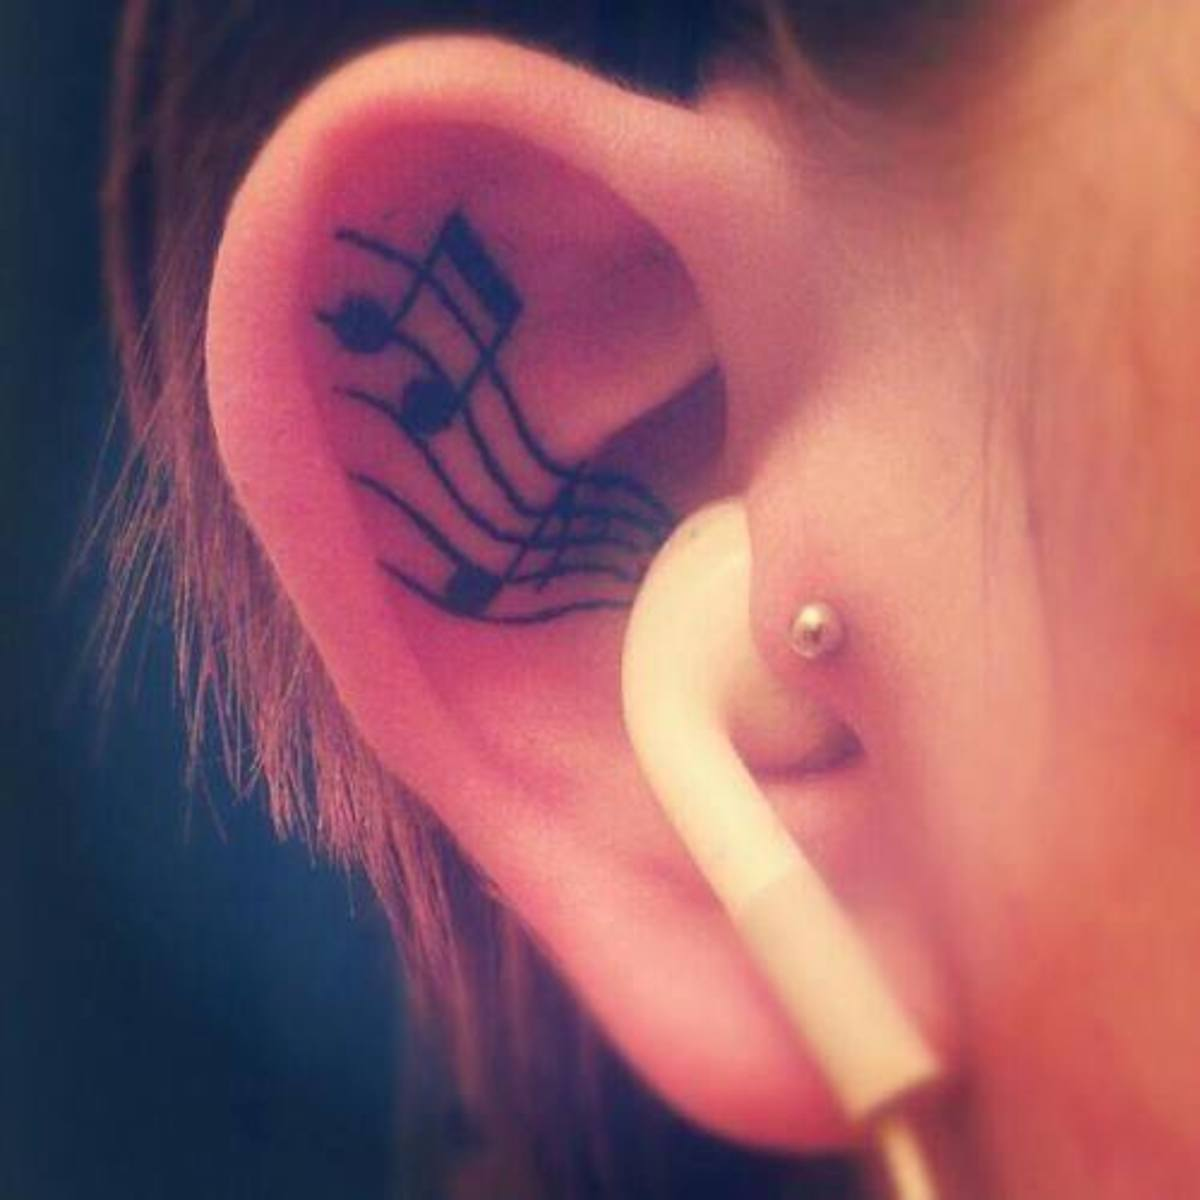 music within the ear